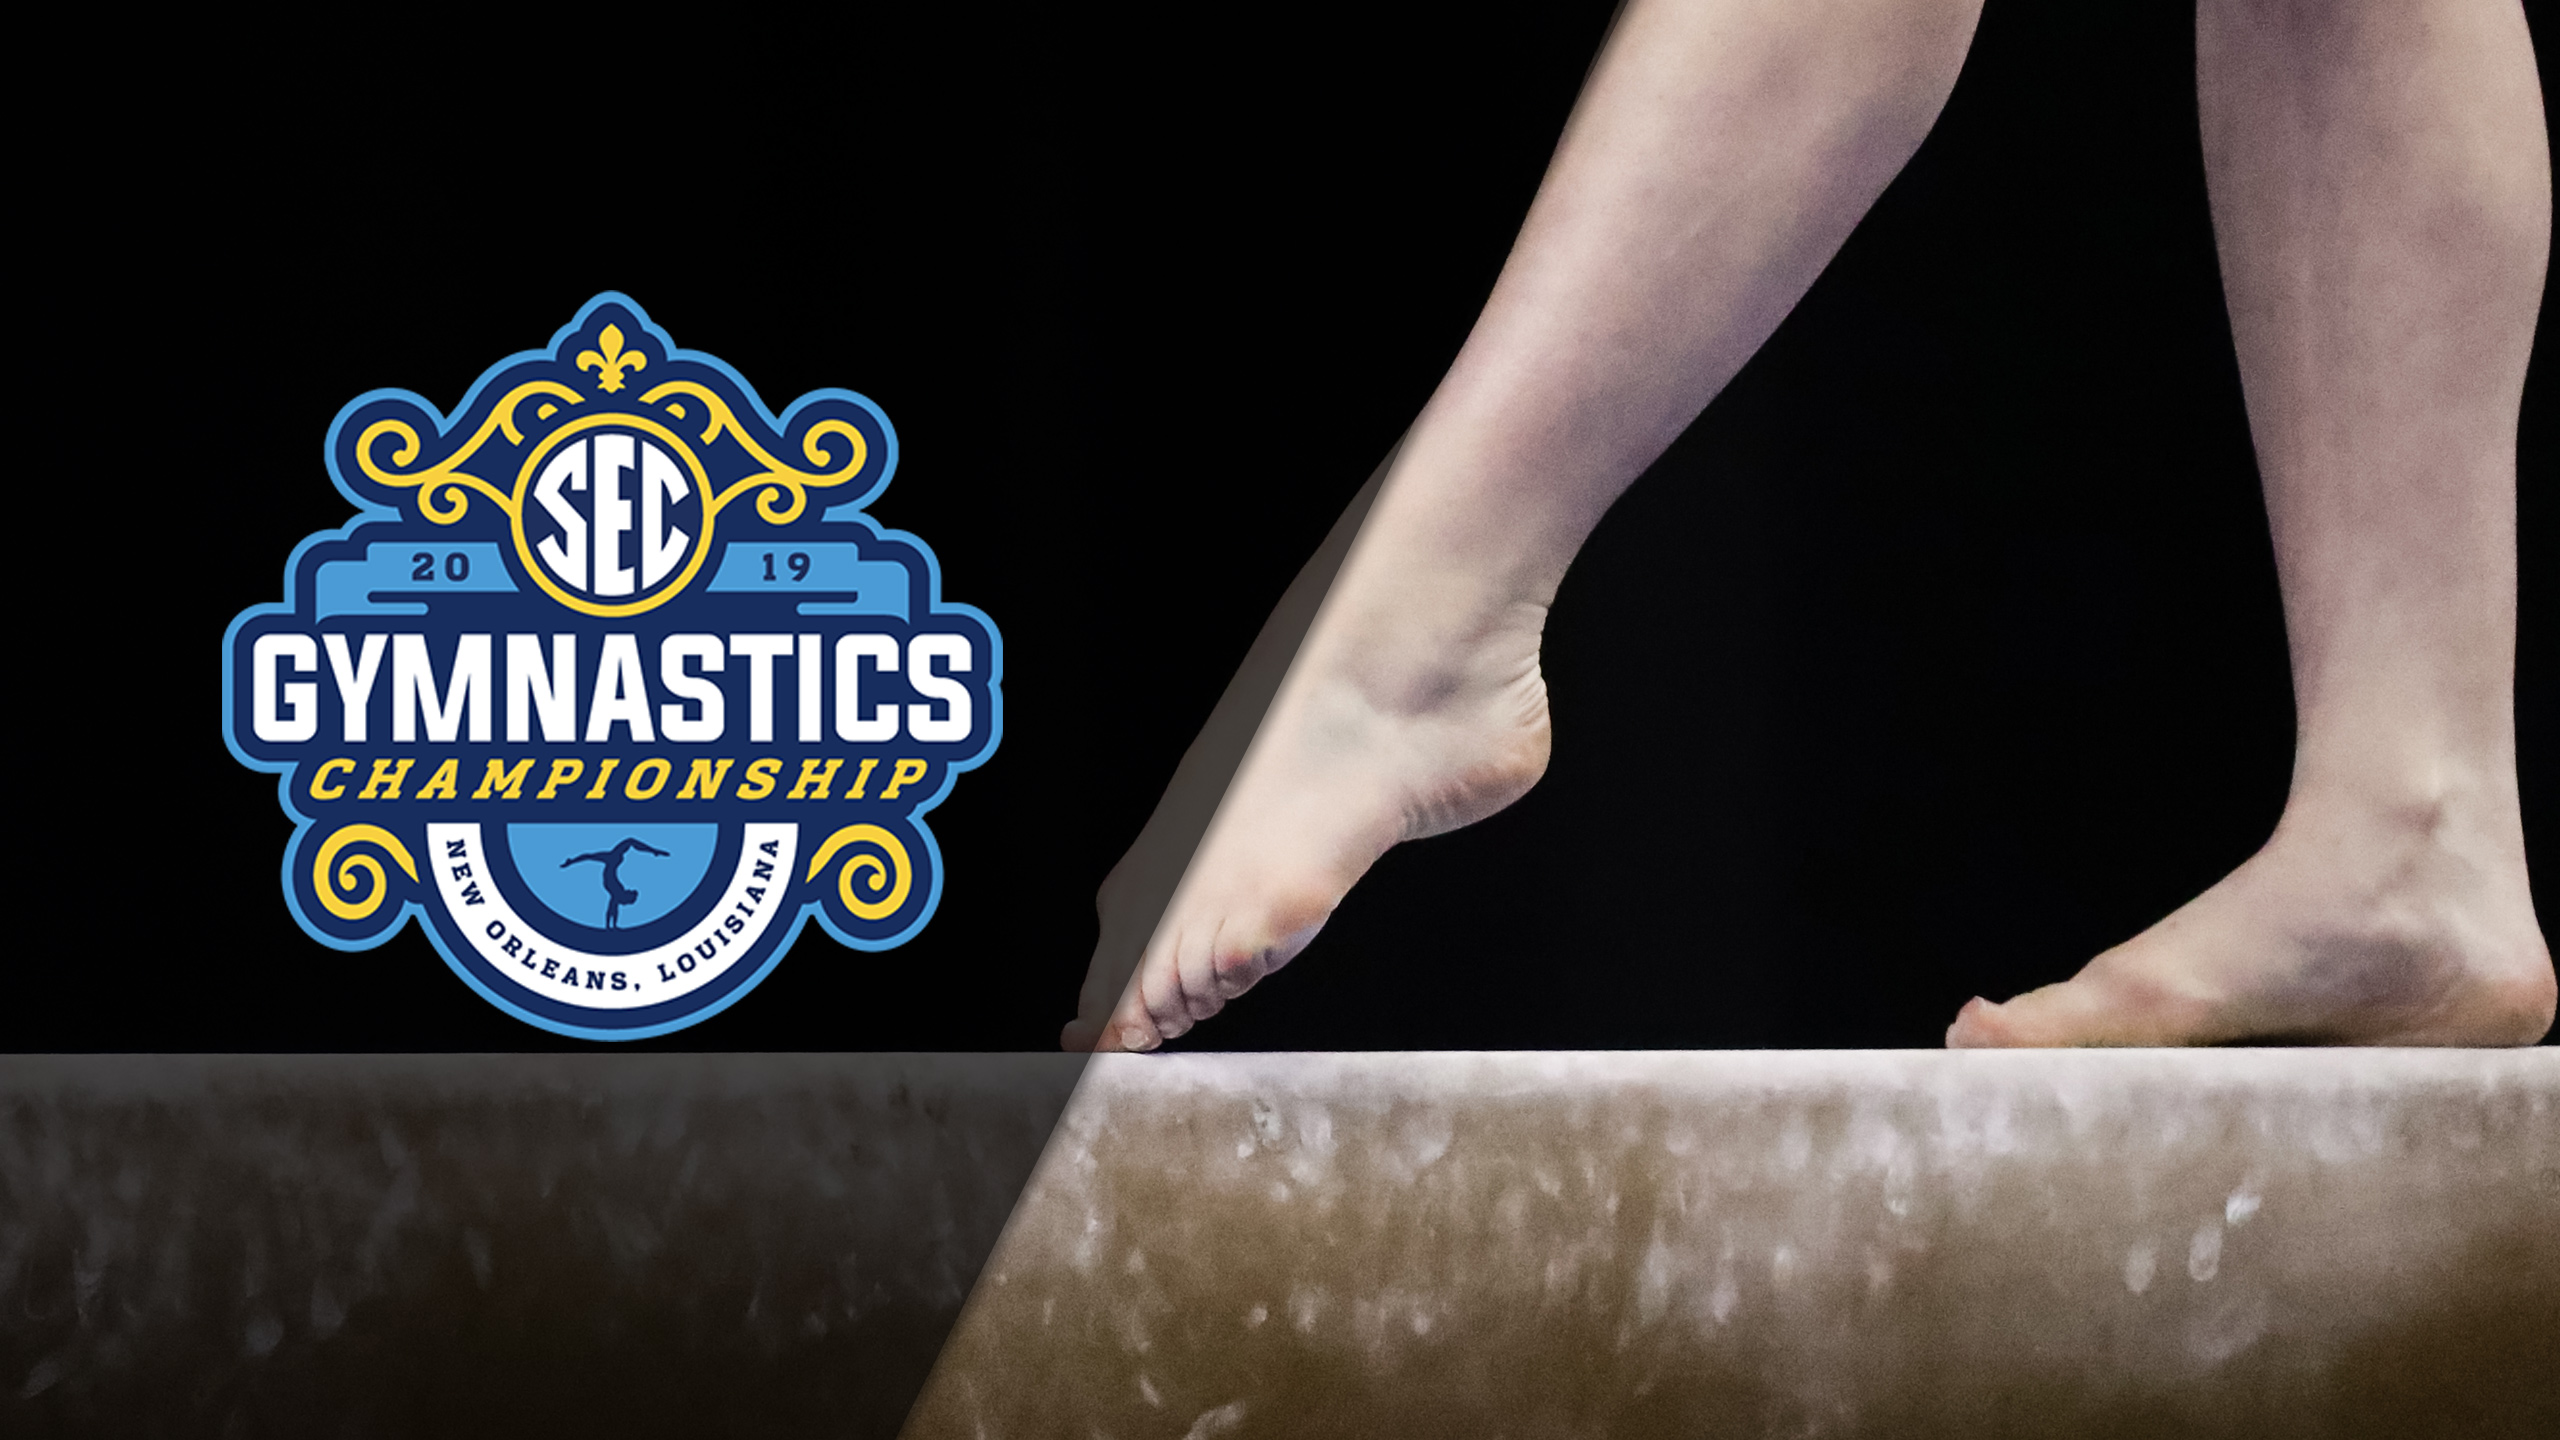 SEC Gymnastics Championship - Beam (Afternoon Session)